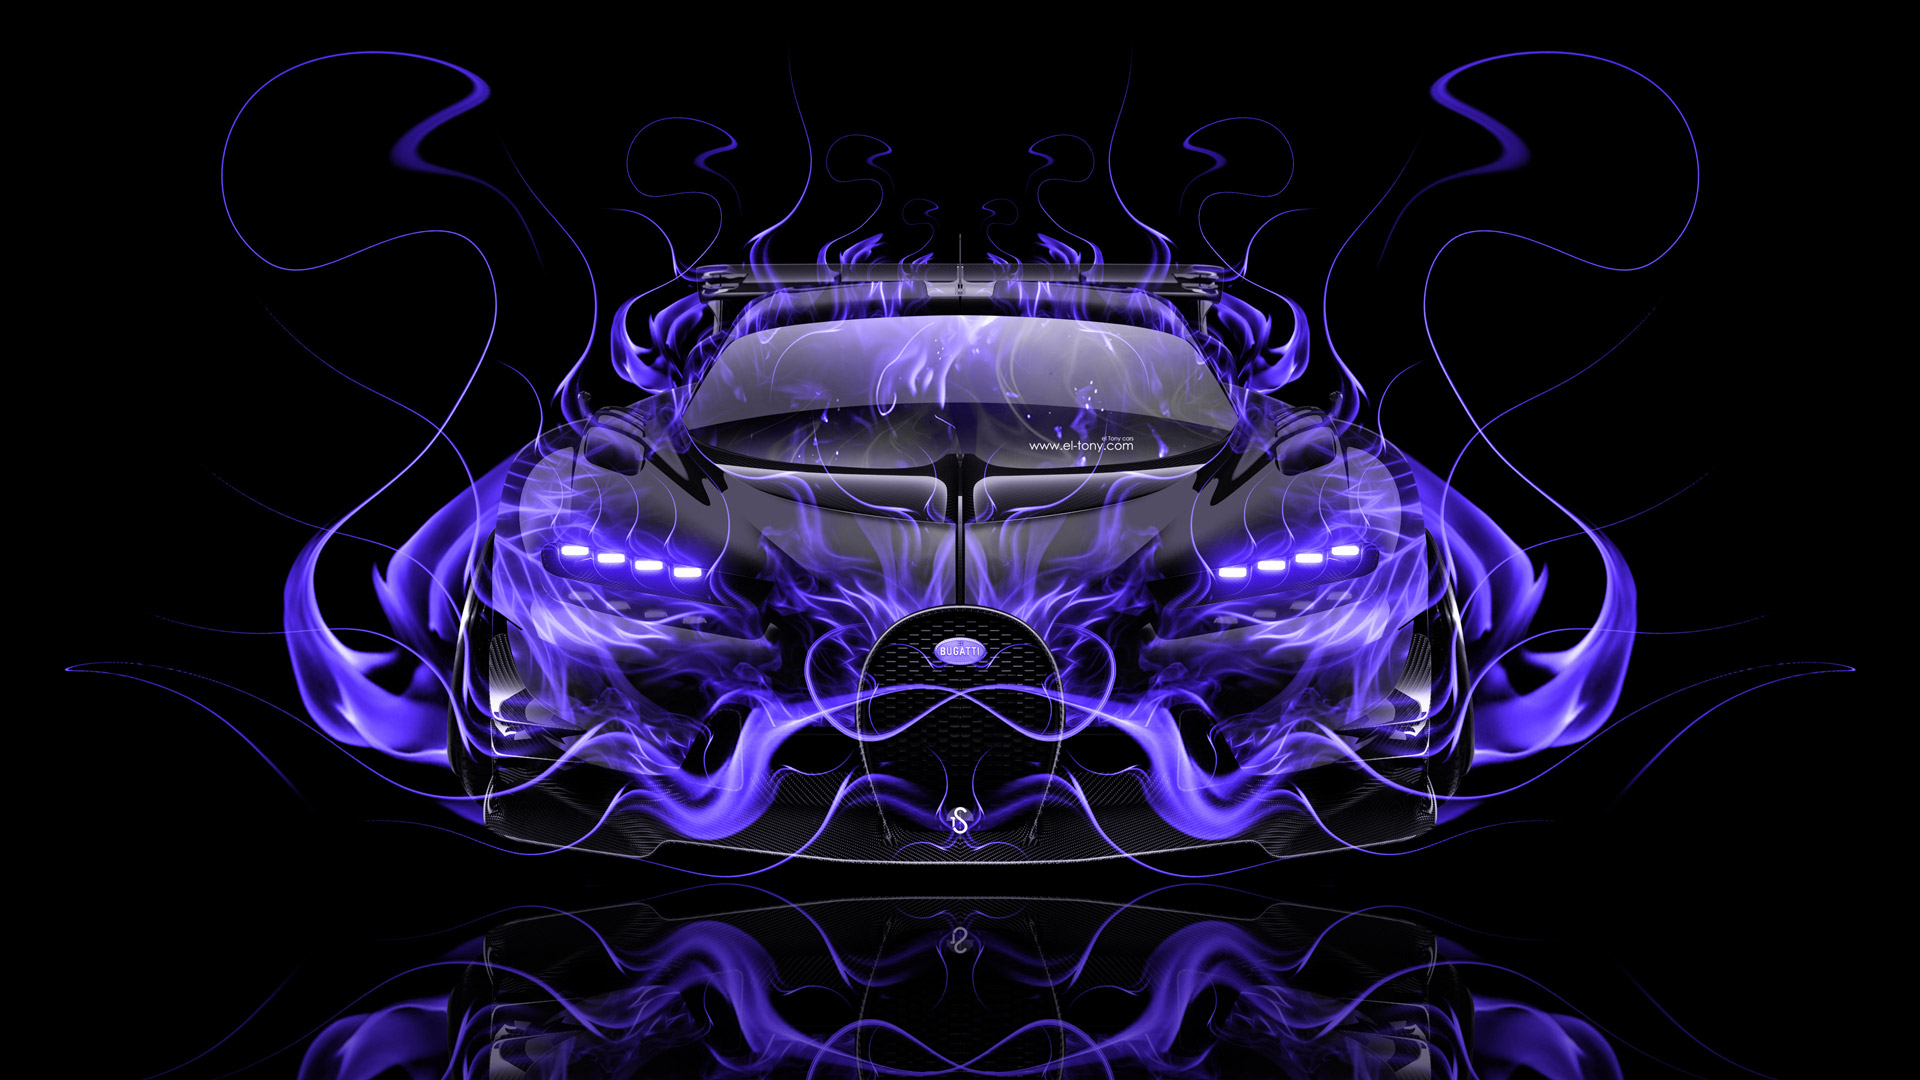 Exceptionnel Mazda RX7 VeilSide JDM Back Fire Abstract Car 2014 HD  Wallpapers Design By Tony Kokhan